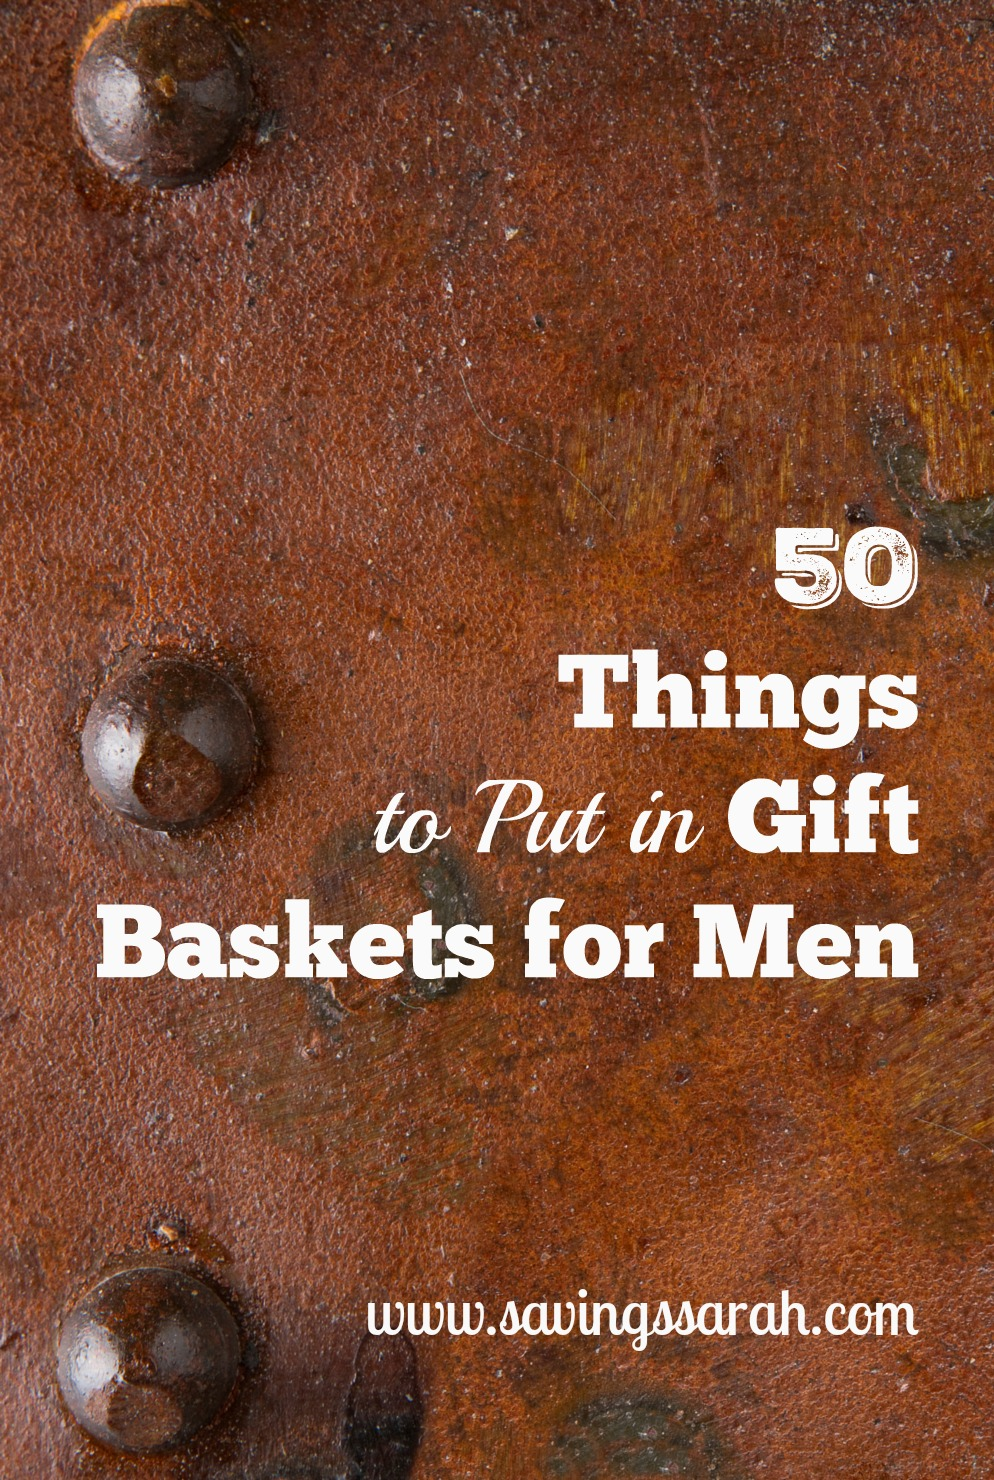 Christmas Gift Baskets For Men.50 Things To Put In Gift Baskets For Men Earning And